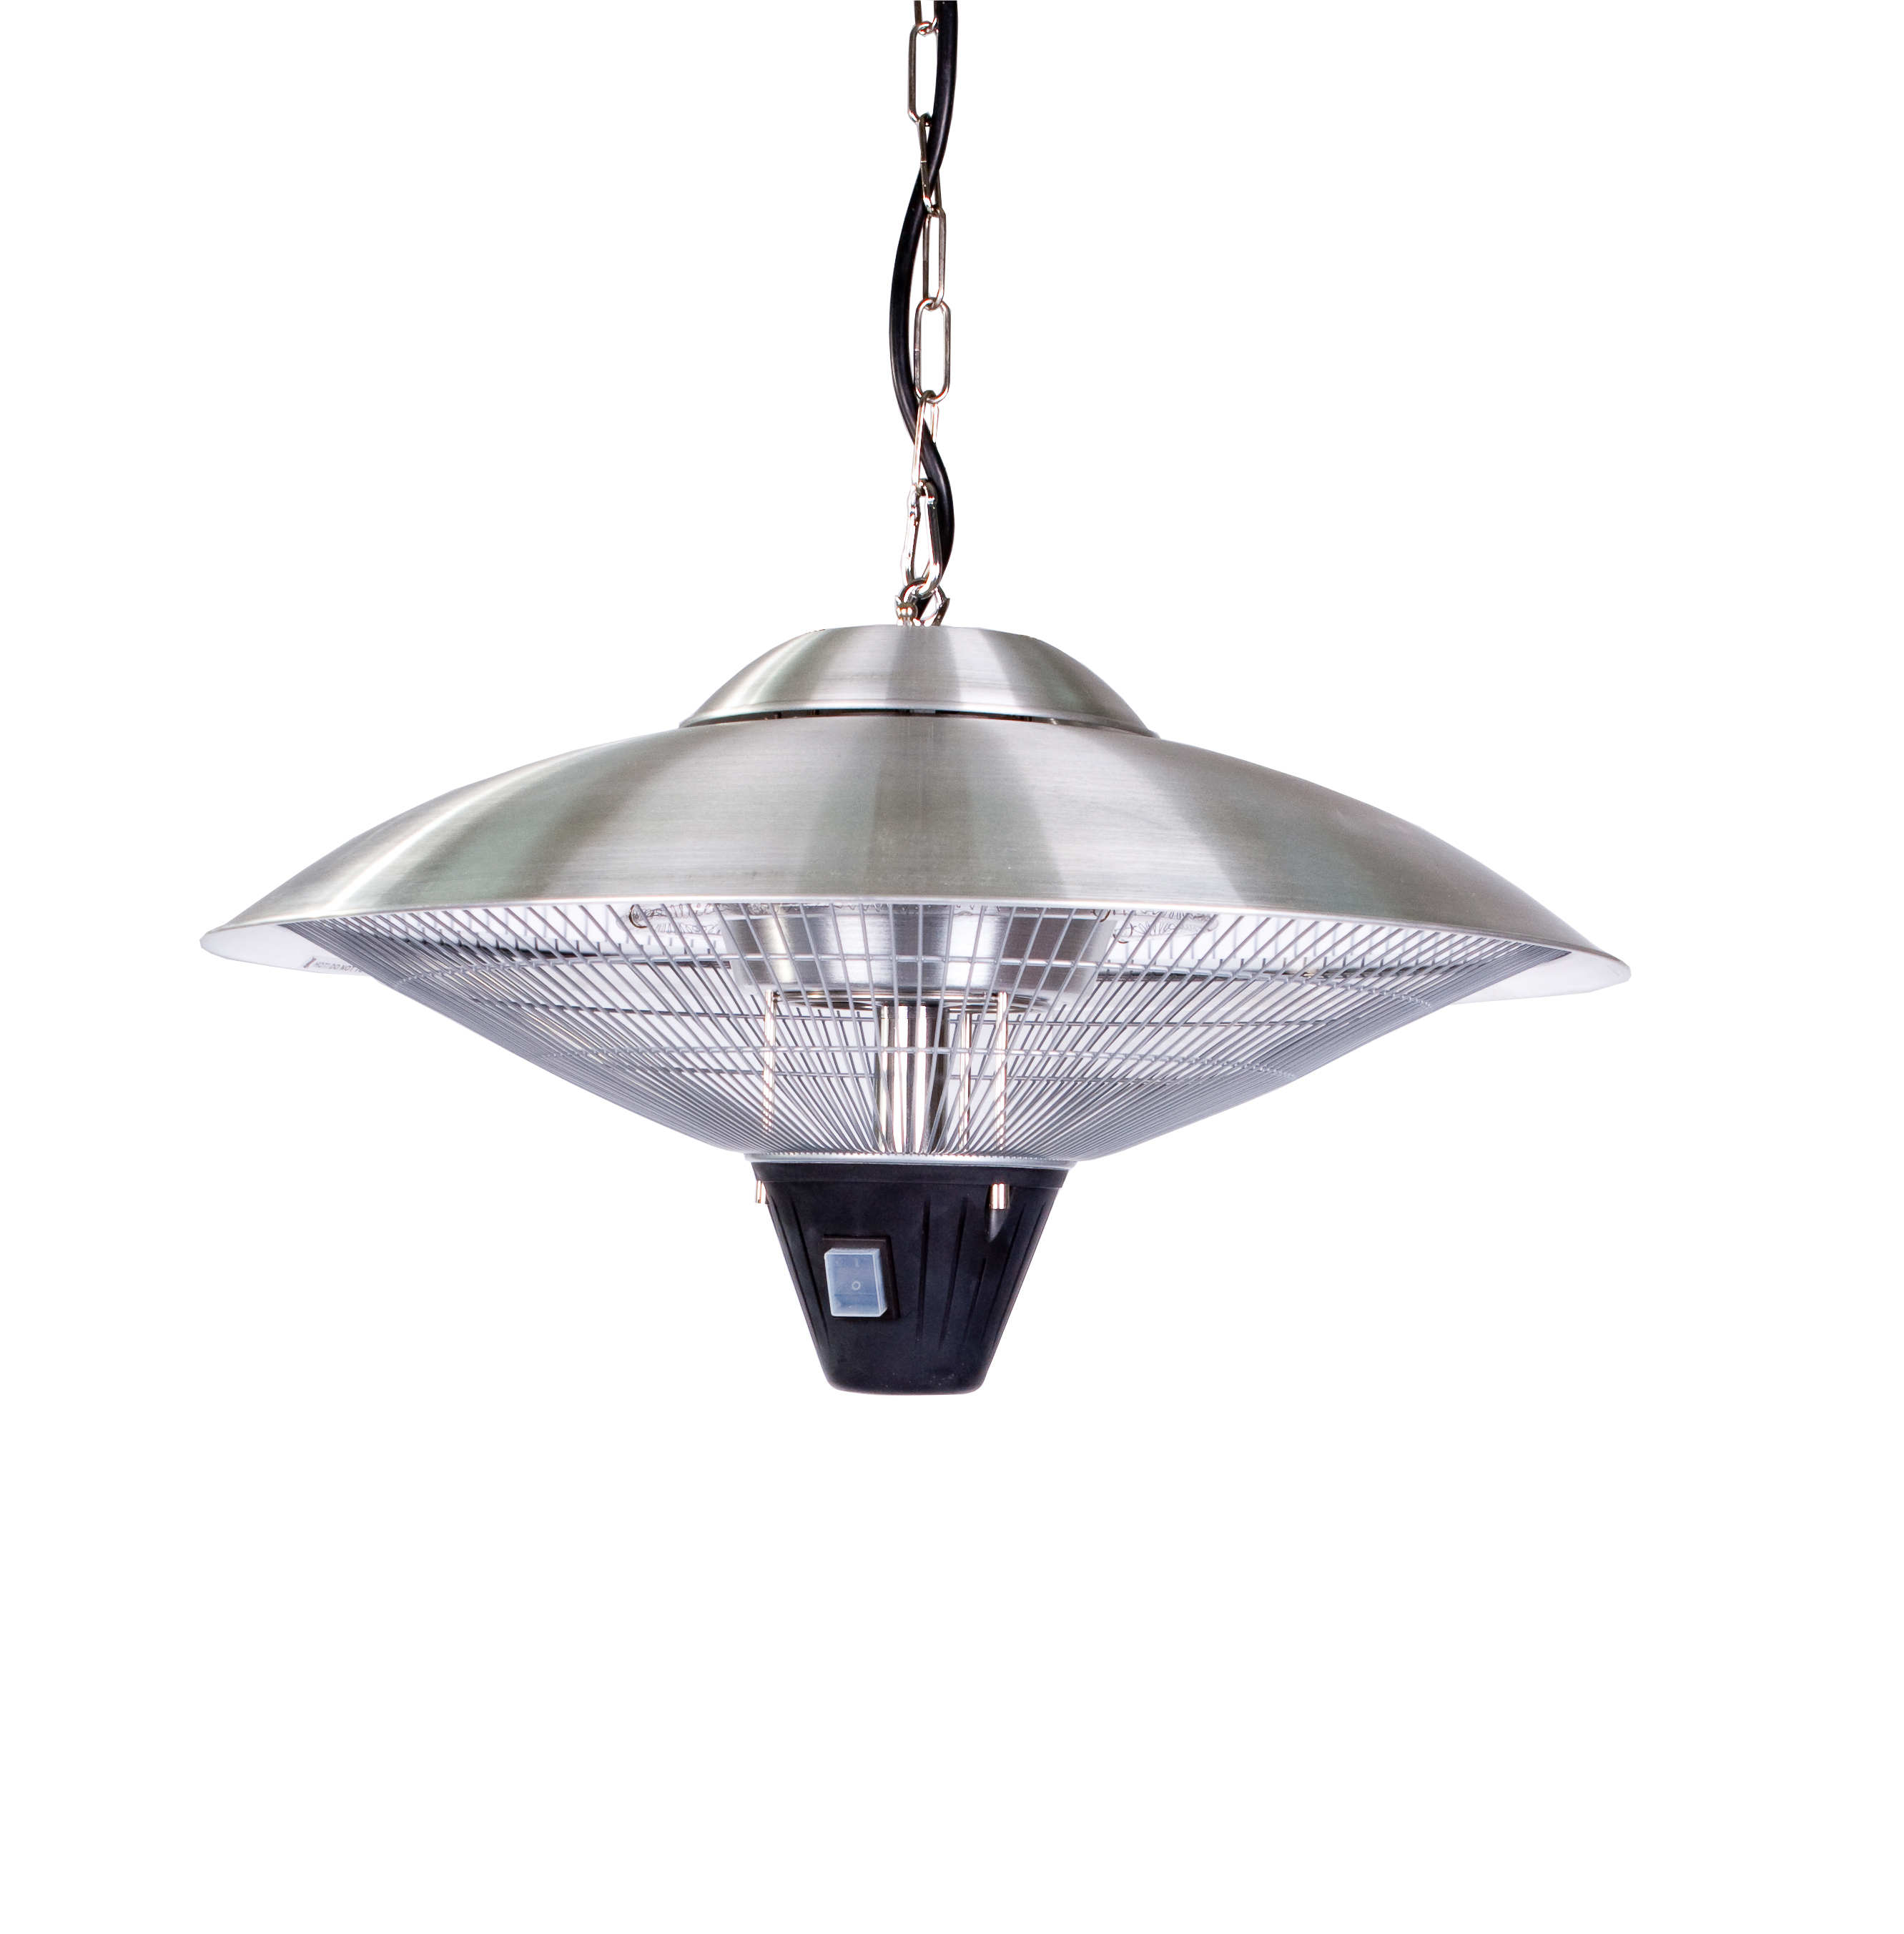 Stainless Steel Hanging Halogen Patio Heater Well